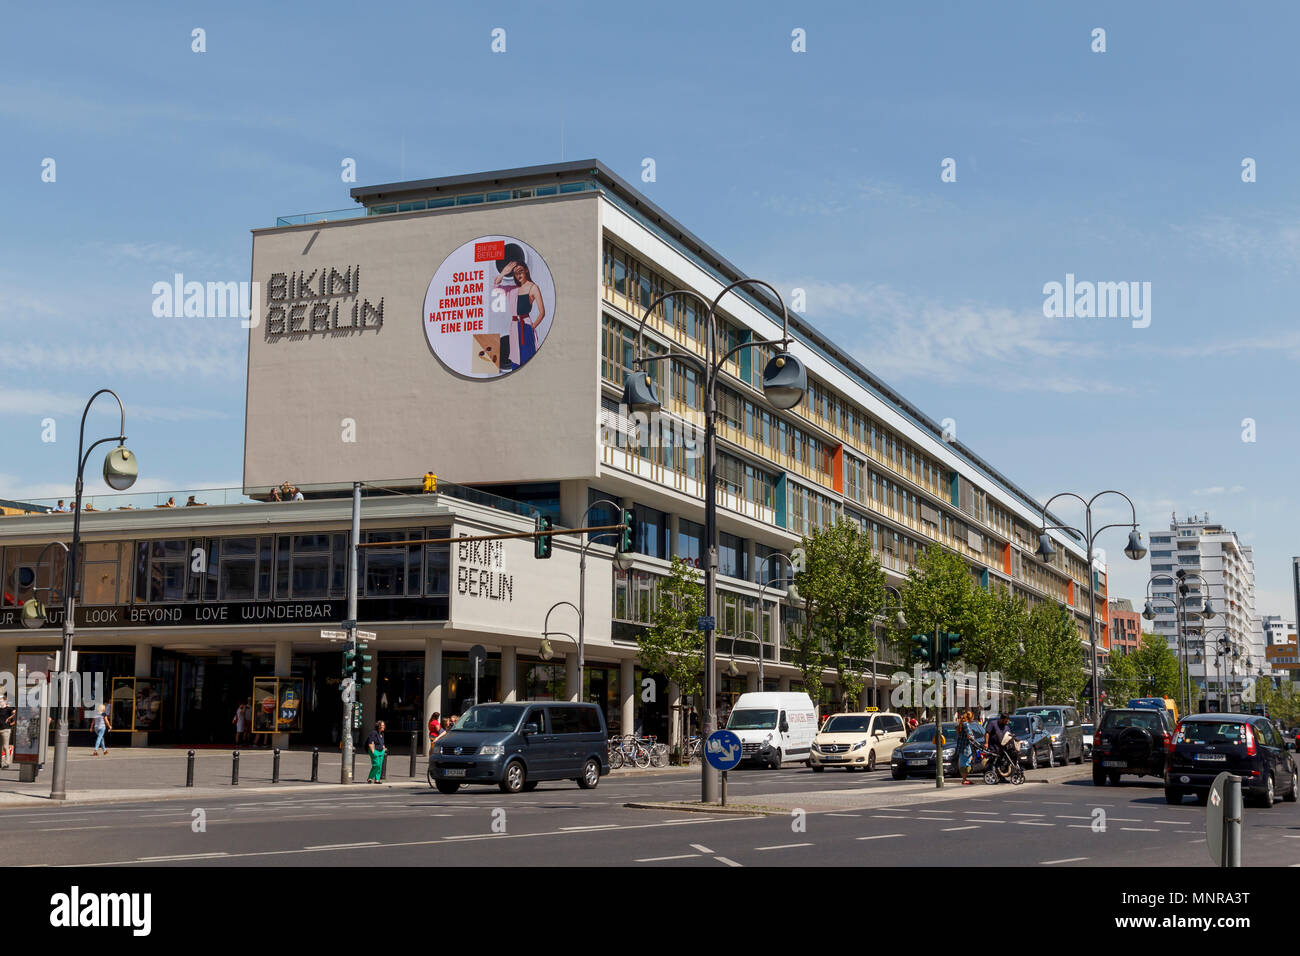 Bikini Berlin building, a concept shopping center at Zoo Berlin with a mix of local and international design brands - Stock Image